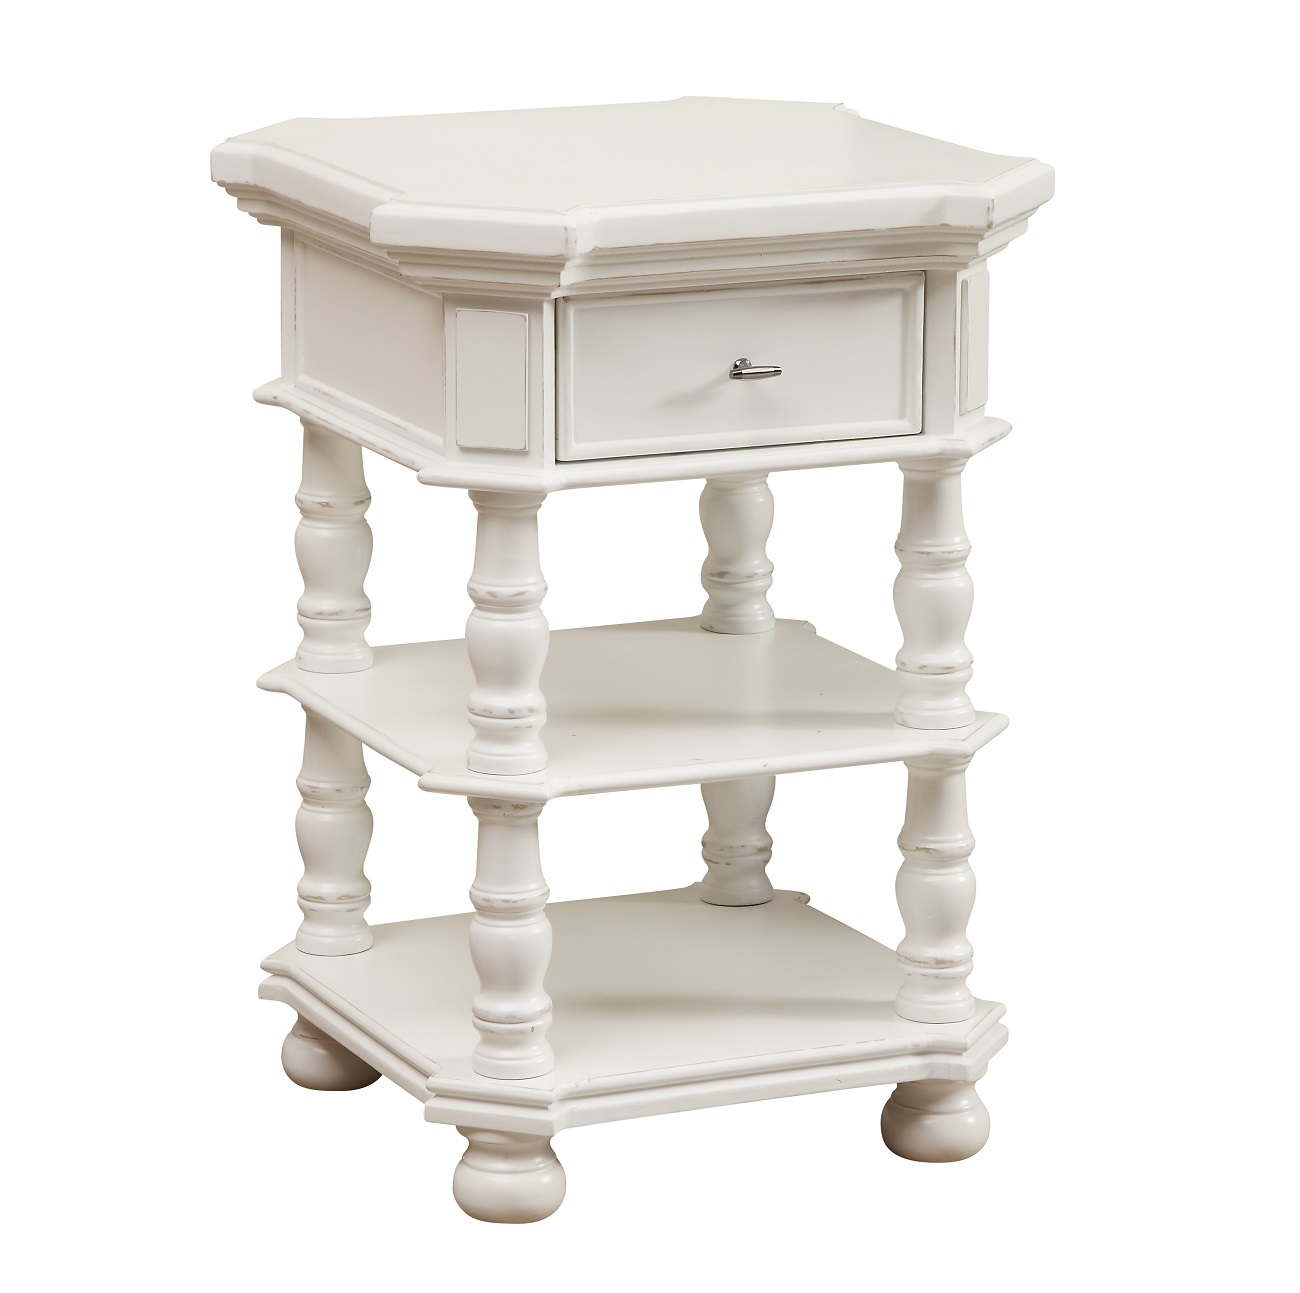 Cirrus White rub finished accent table